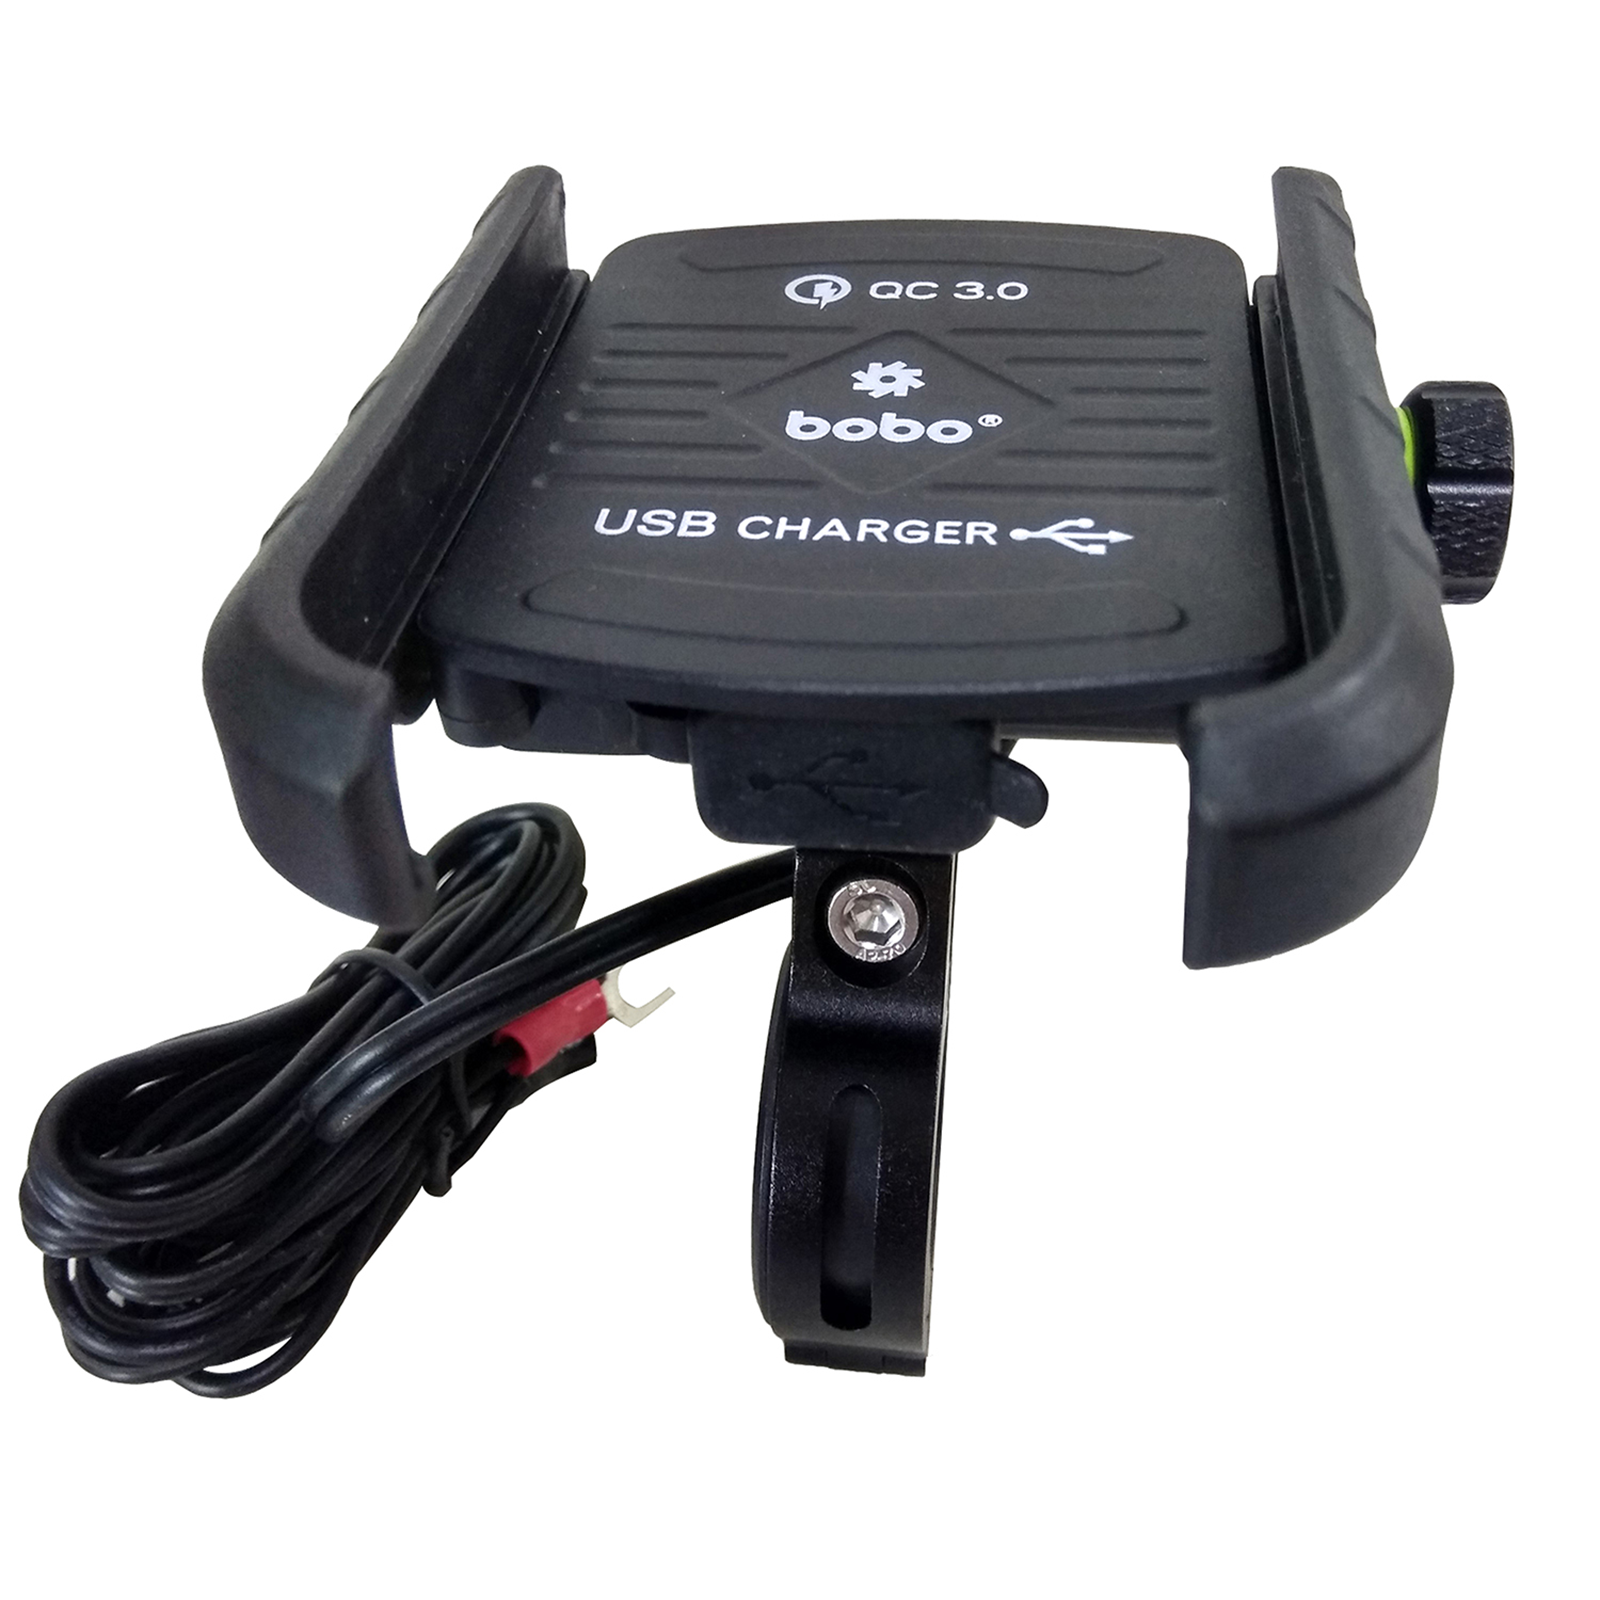 Bobo BM1 Jaw-Grip Mounting Kit For Bike (With Fast USB 3.0 Charger, BB-BM-001-001001, Black)_1